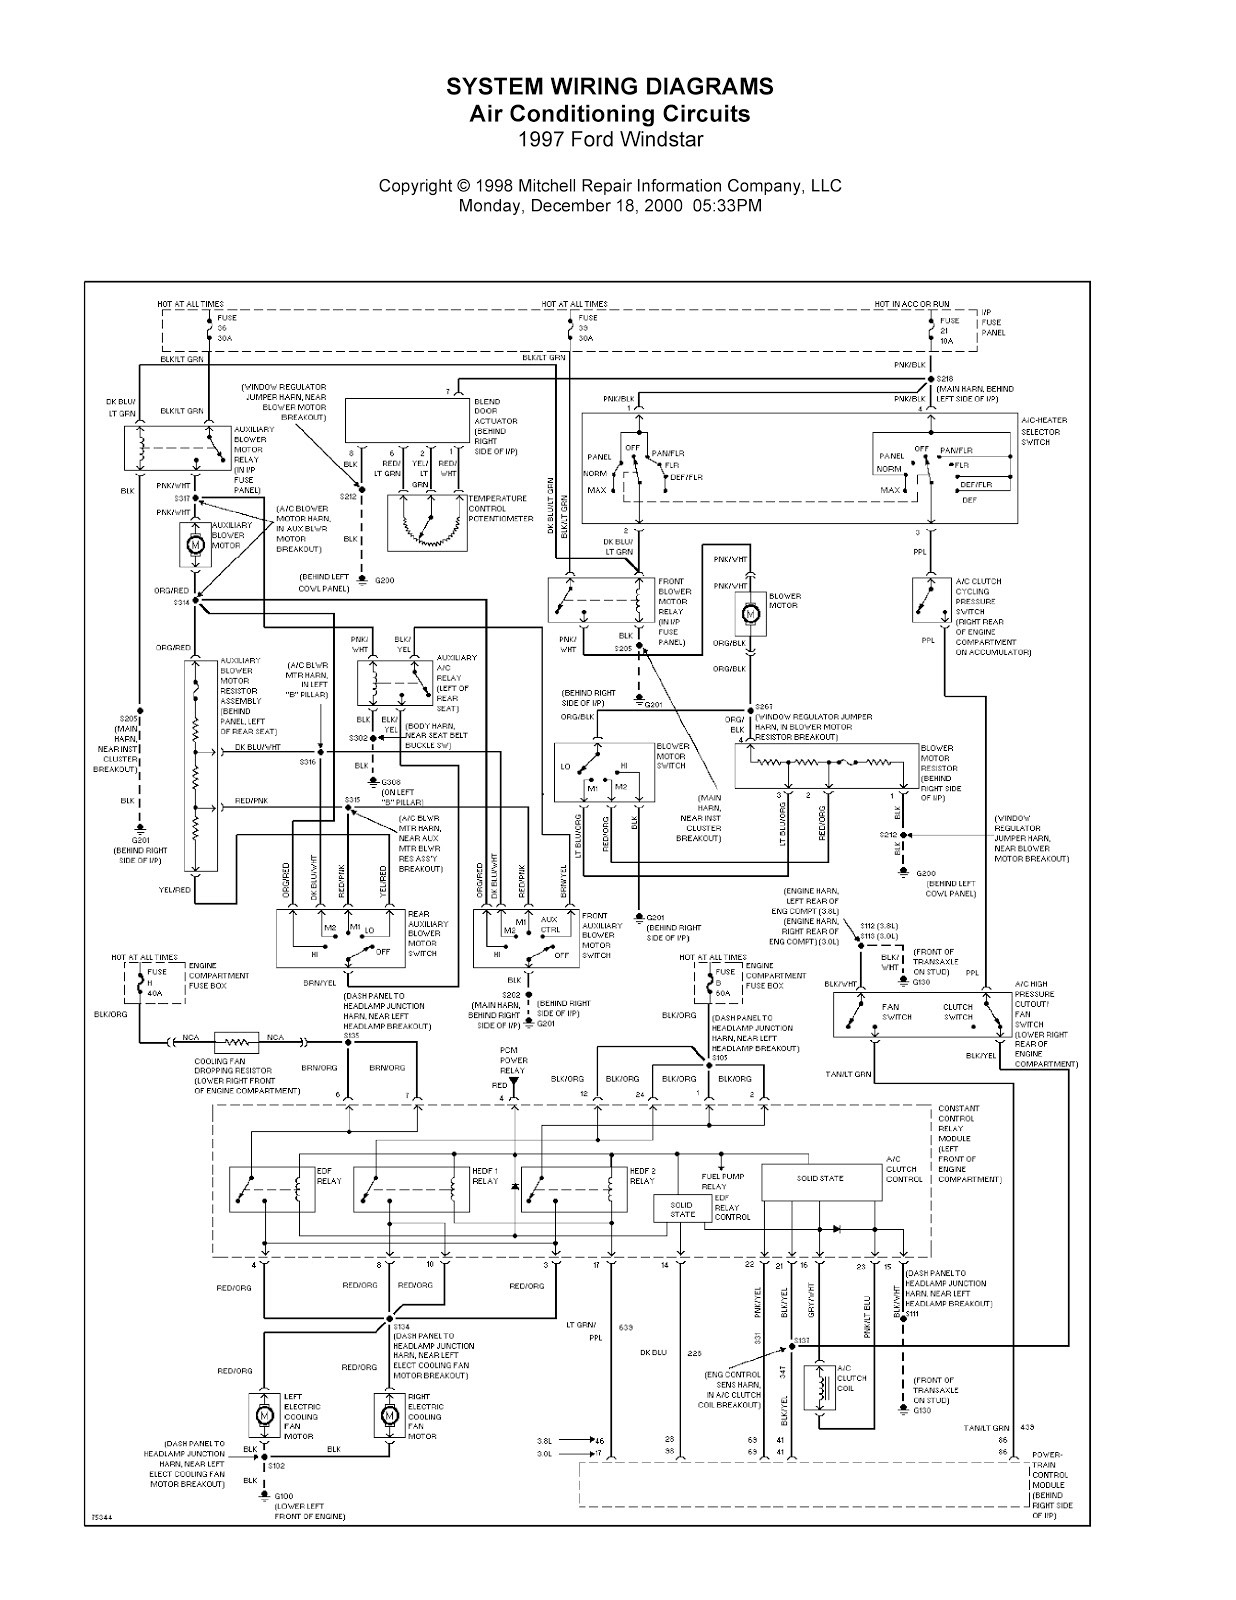 Abs System Diagram Amazing Mgf Wiring Diagram Gallery Everything You Need to Know Of Abs System Diagram